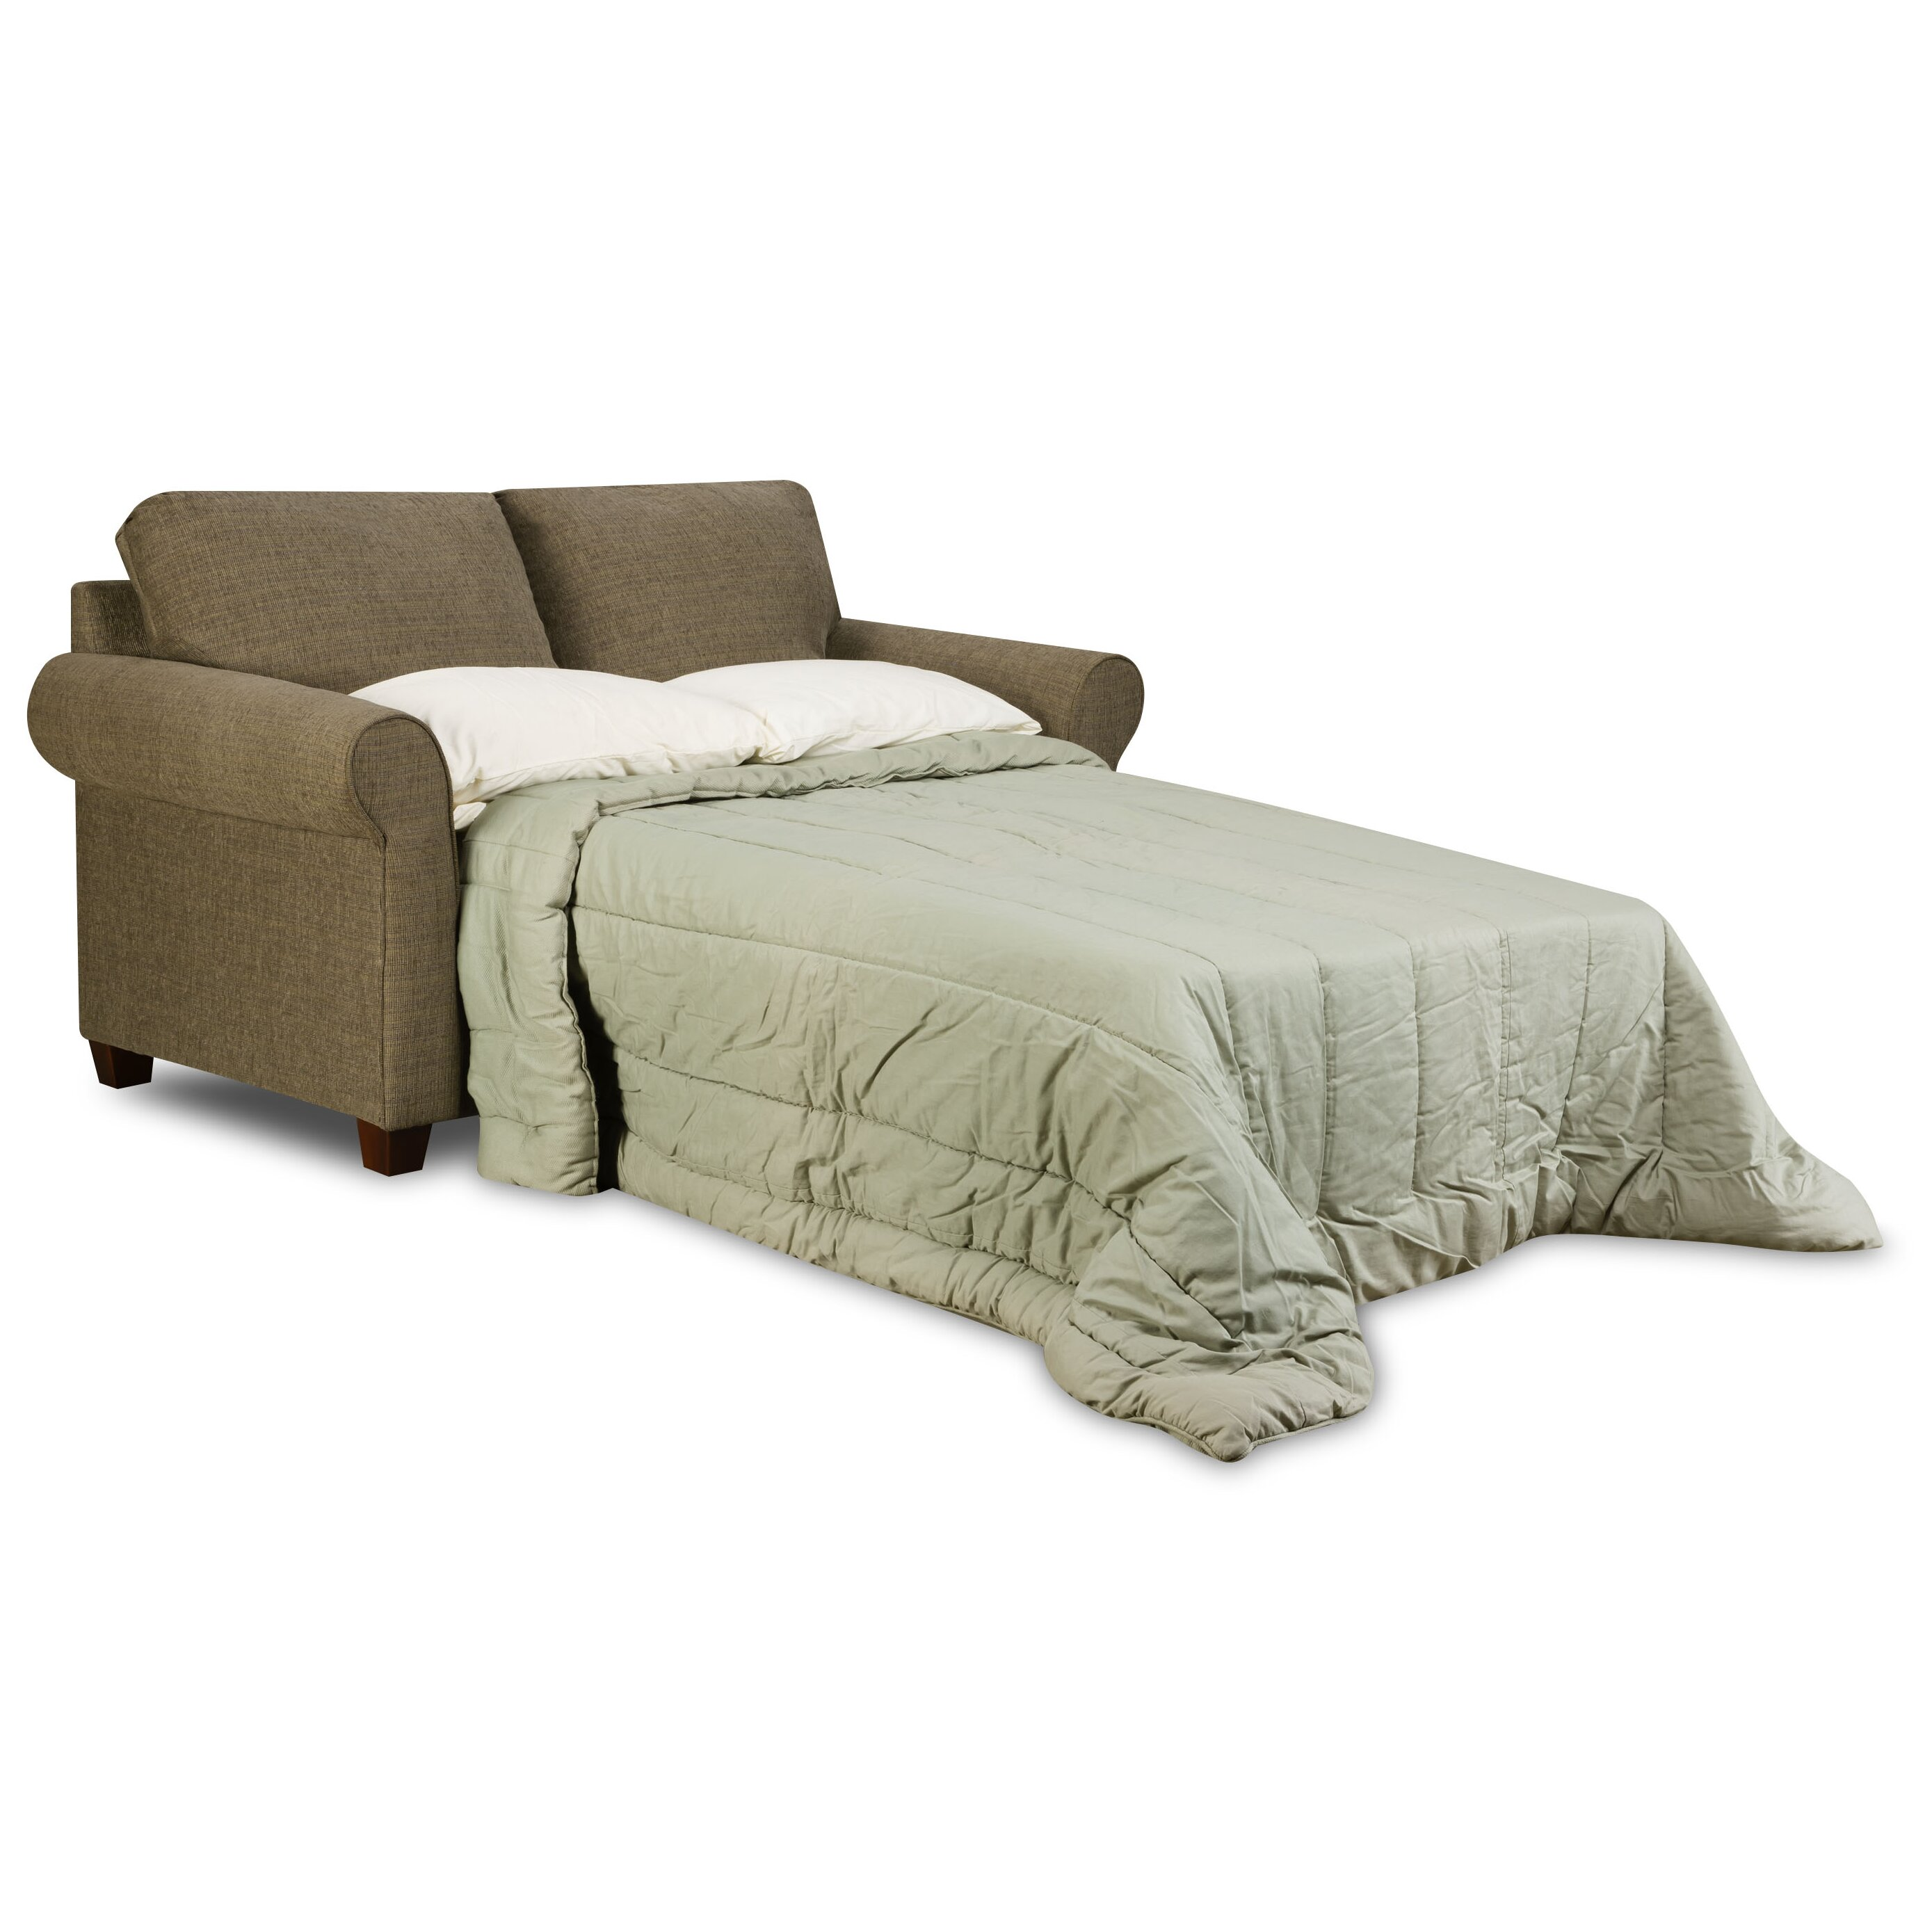 Simmons Upholstery Cullen Twin Sleeper Sofa Reviews